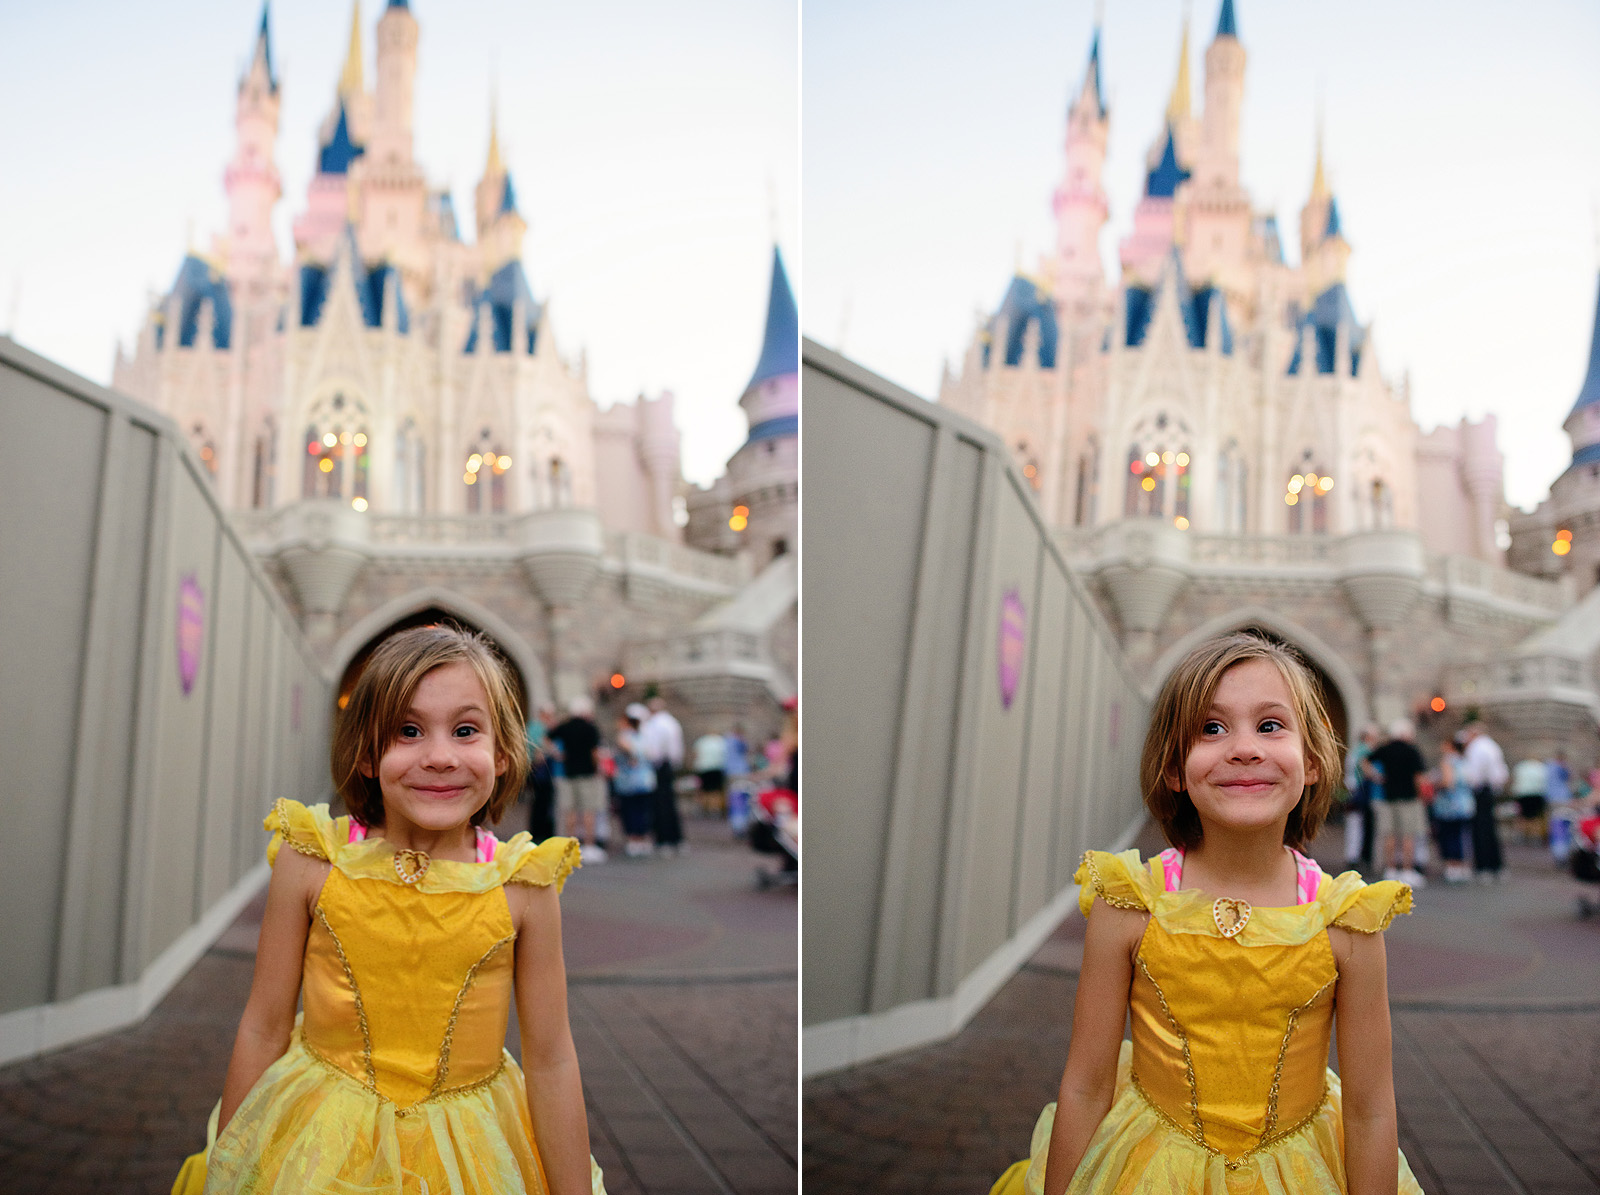 the most excited little princess in front of Cinderella's castle at magic kingdom